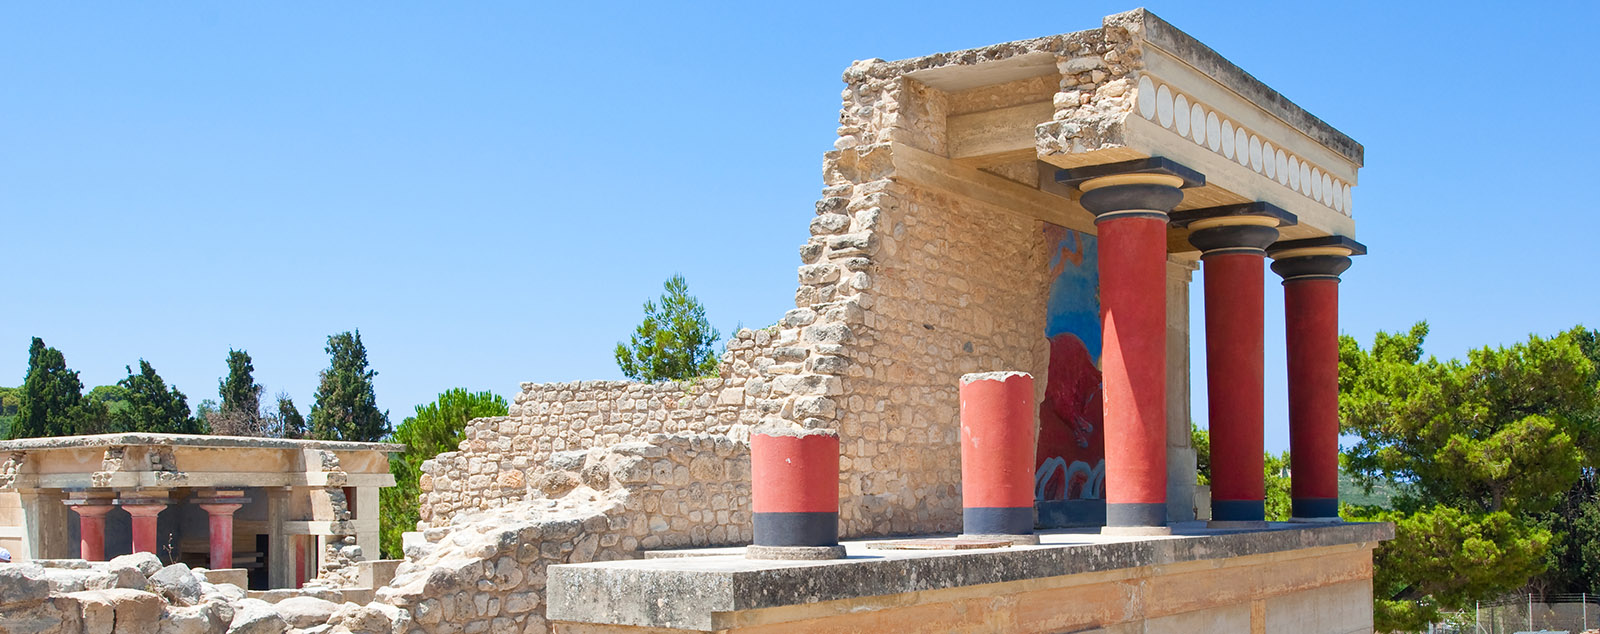 Knossos palace, red pillars prop up the ancient structure, a mural of a bull can be seen, with further ancient pillared structures in the background